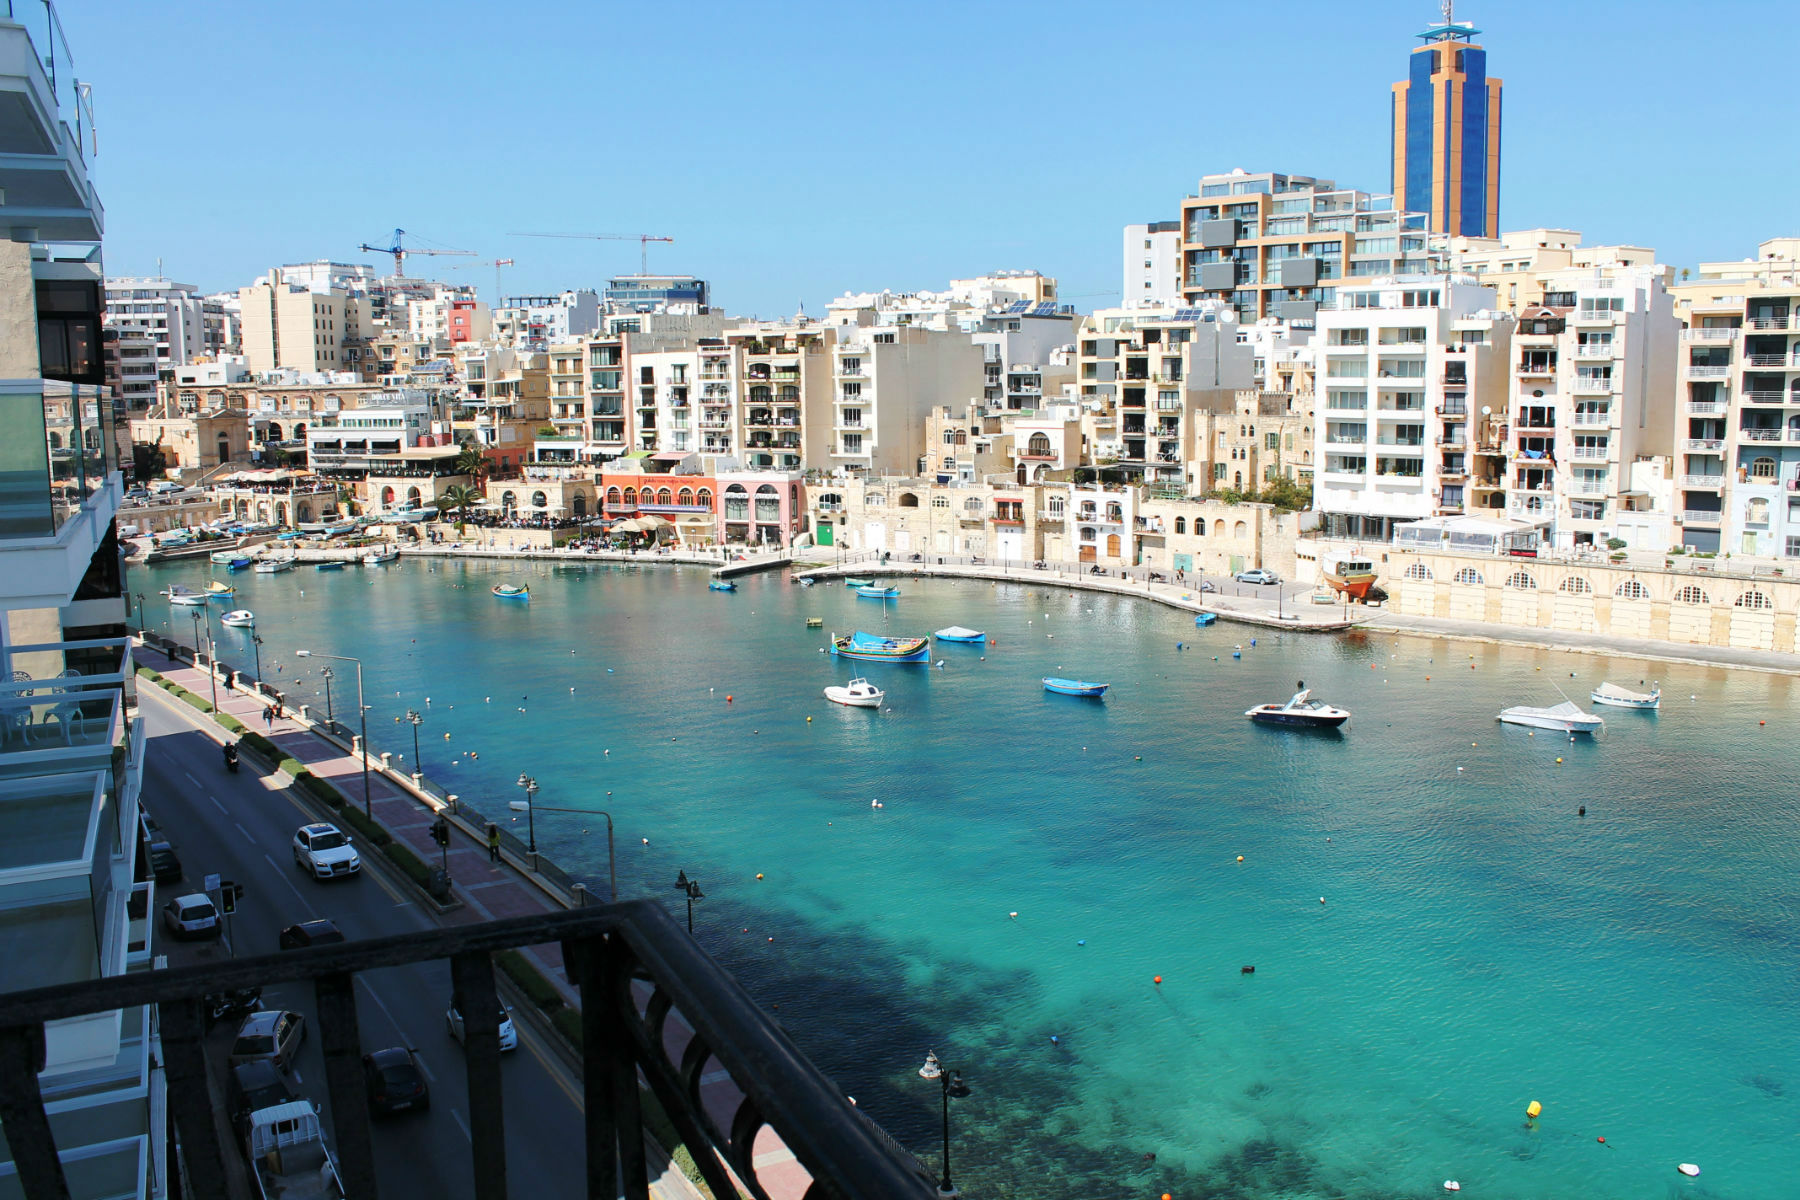 5 Reasons to Buy a Real-Estate Property in Malta